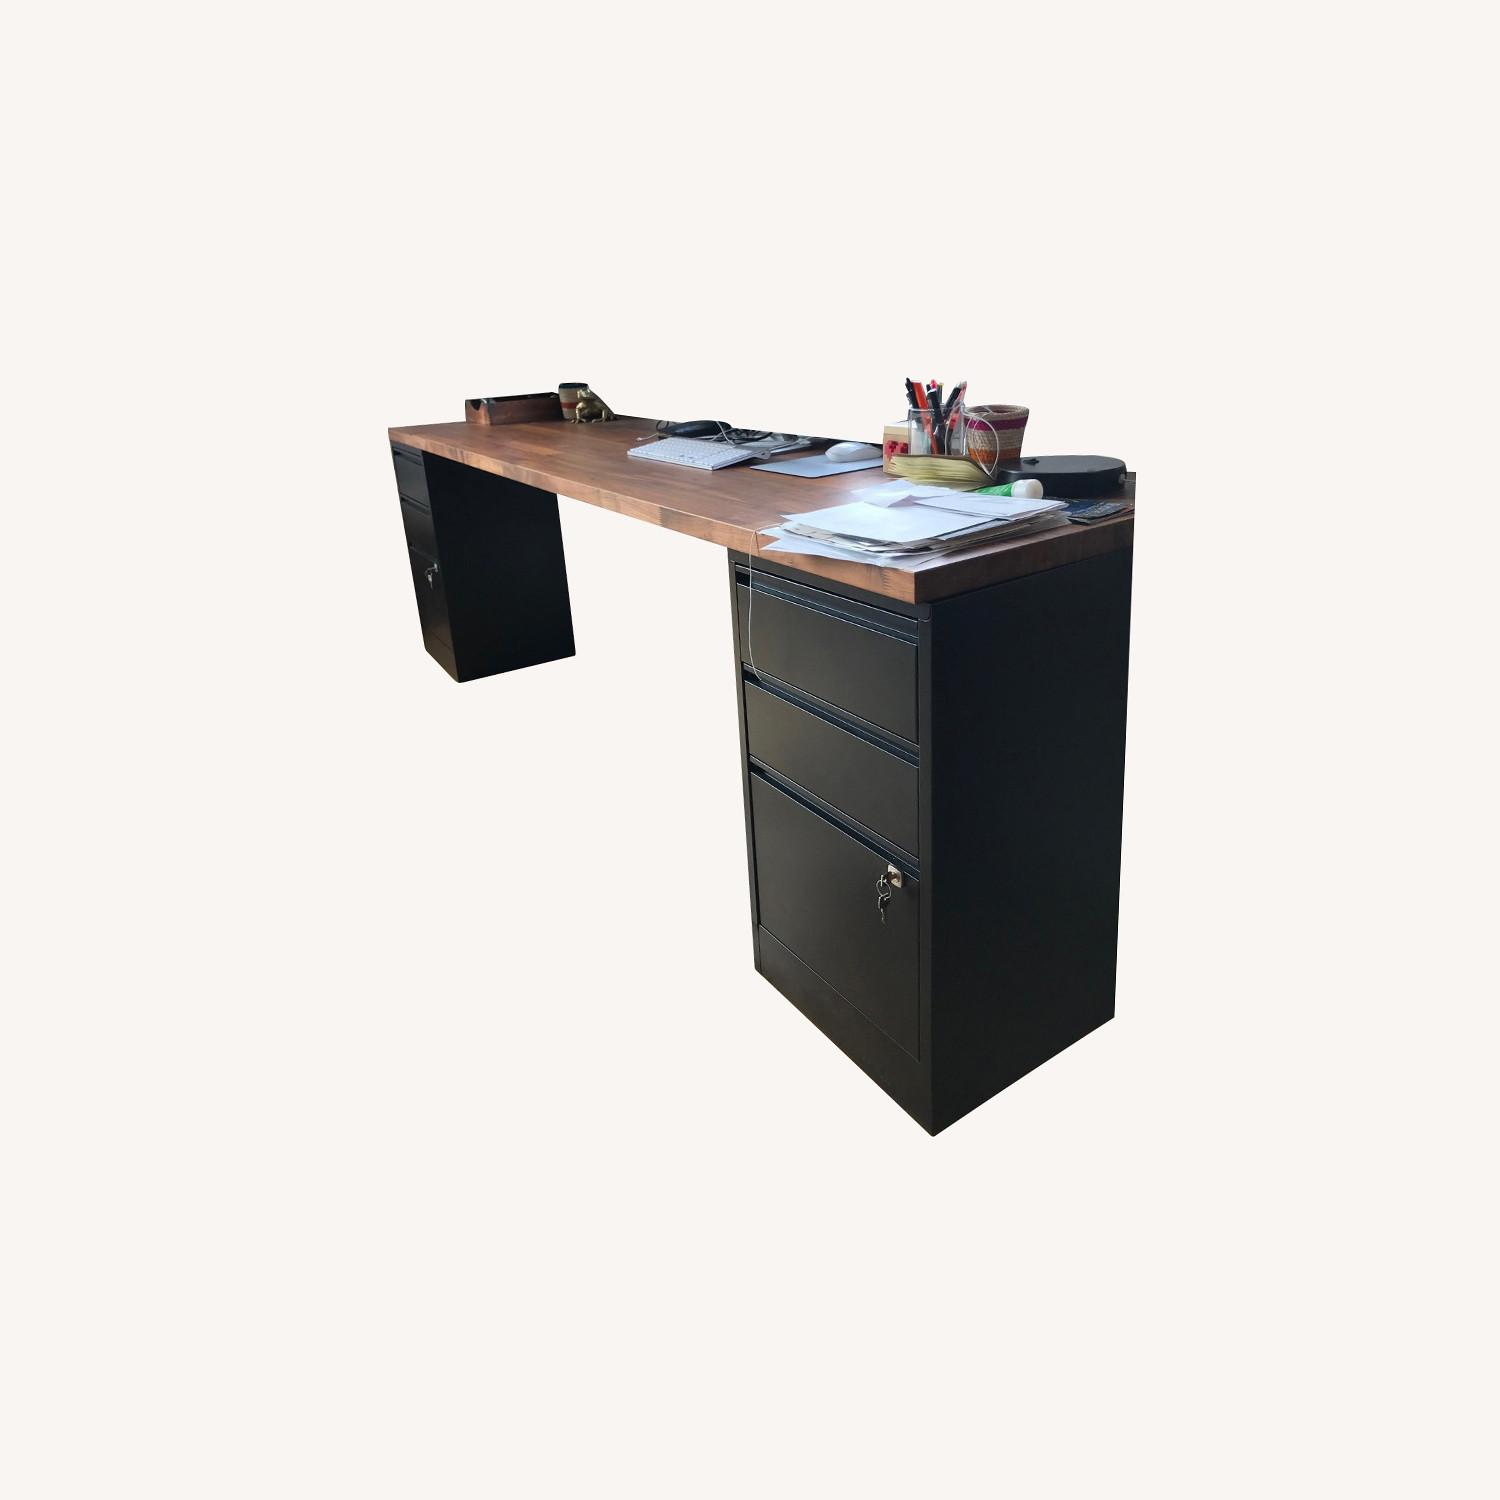 Long Wood Desk Top with 2 Filing Cabinets - image-0